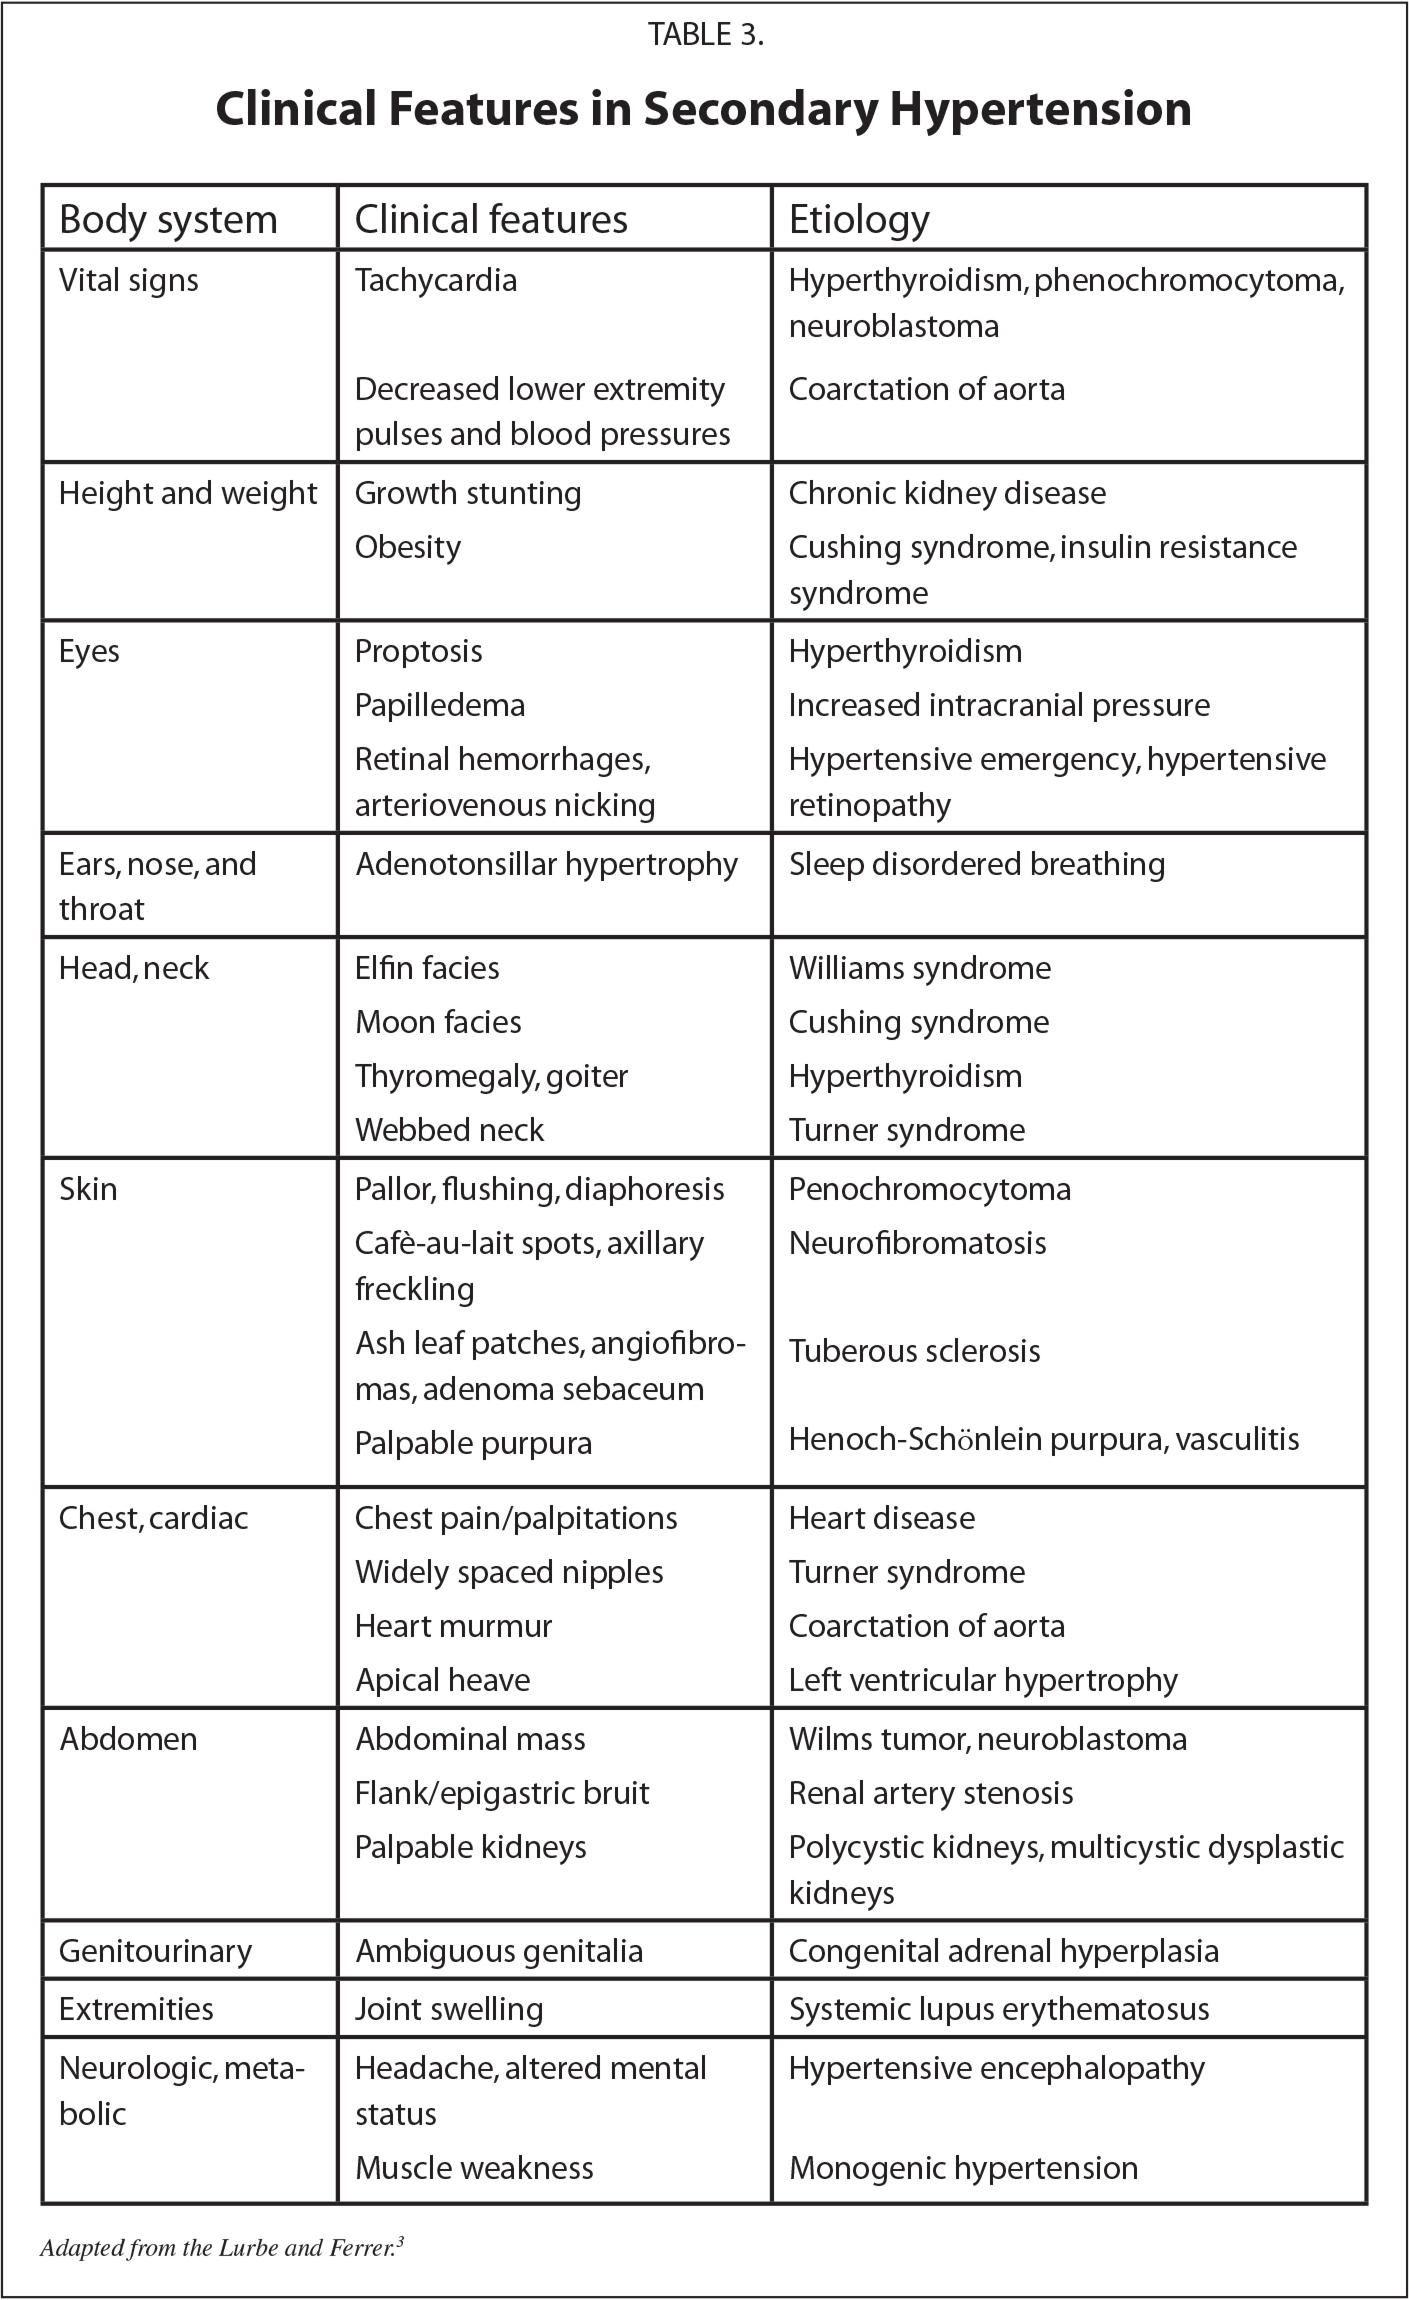 Clinical Features in Secondary Hypertension